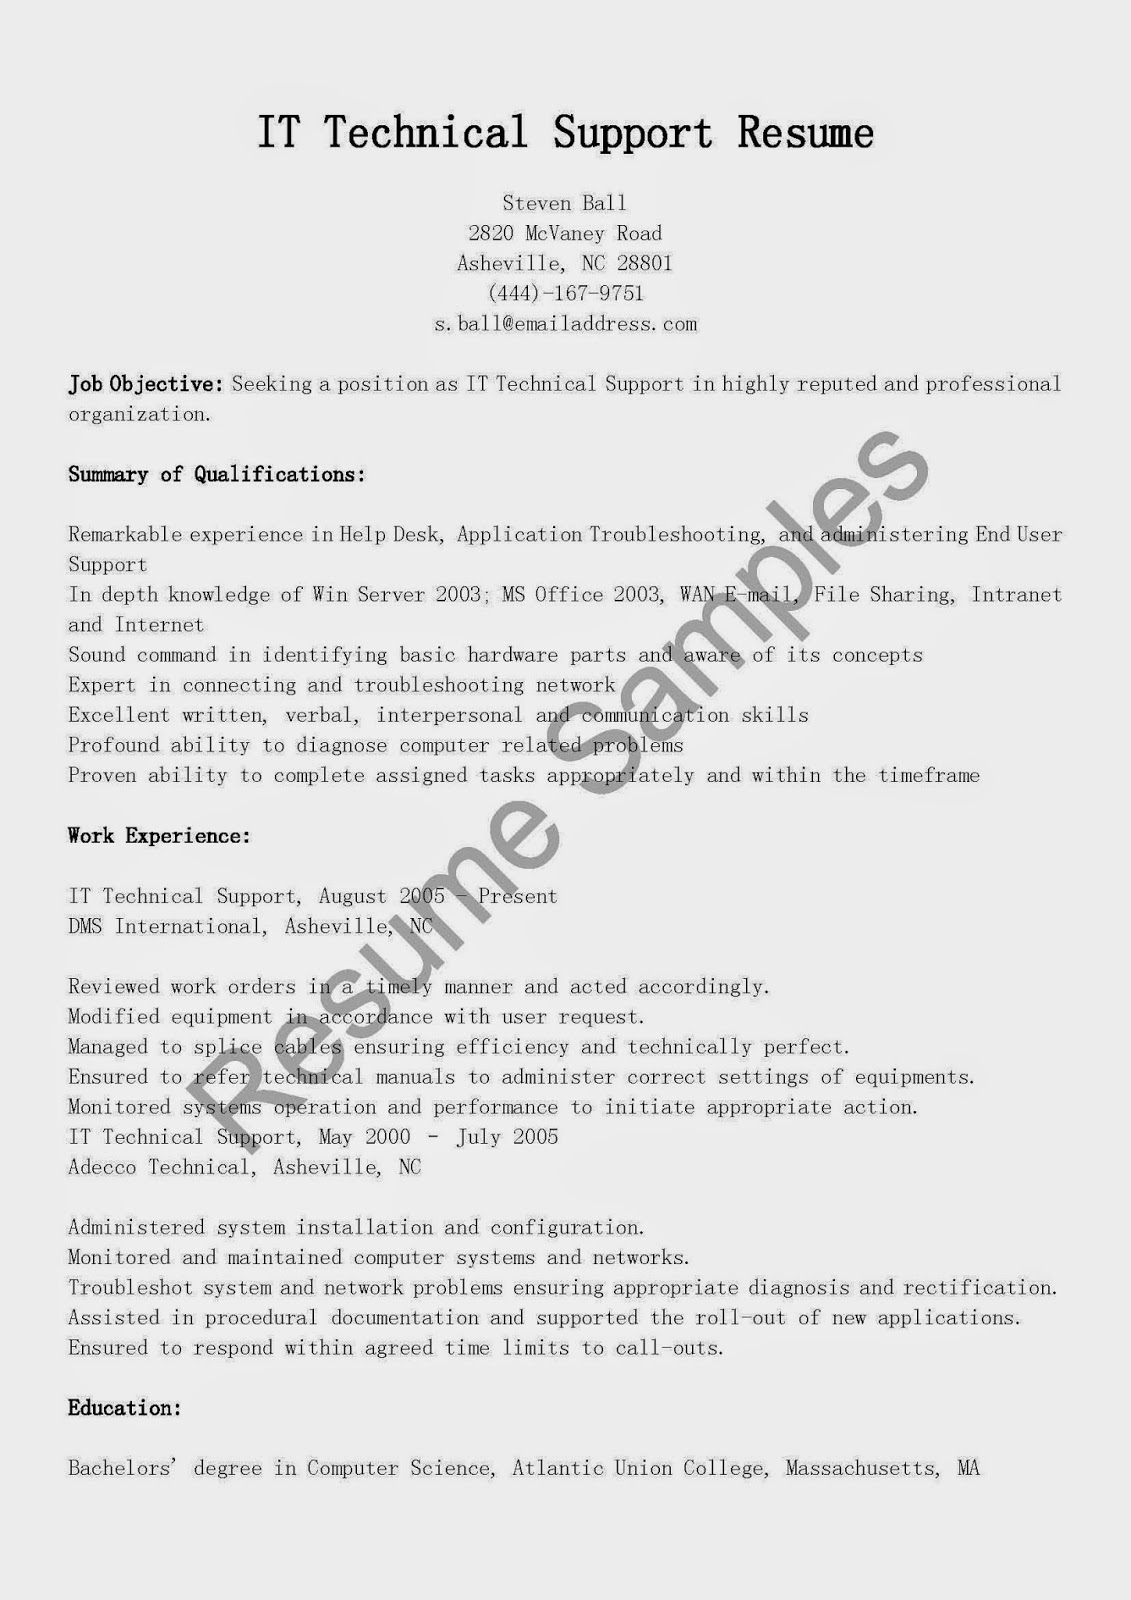 resume samples  it technical support resume sample